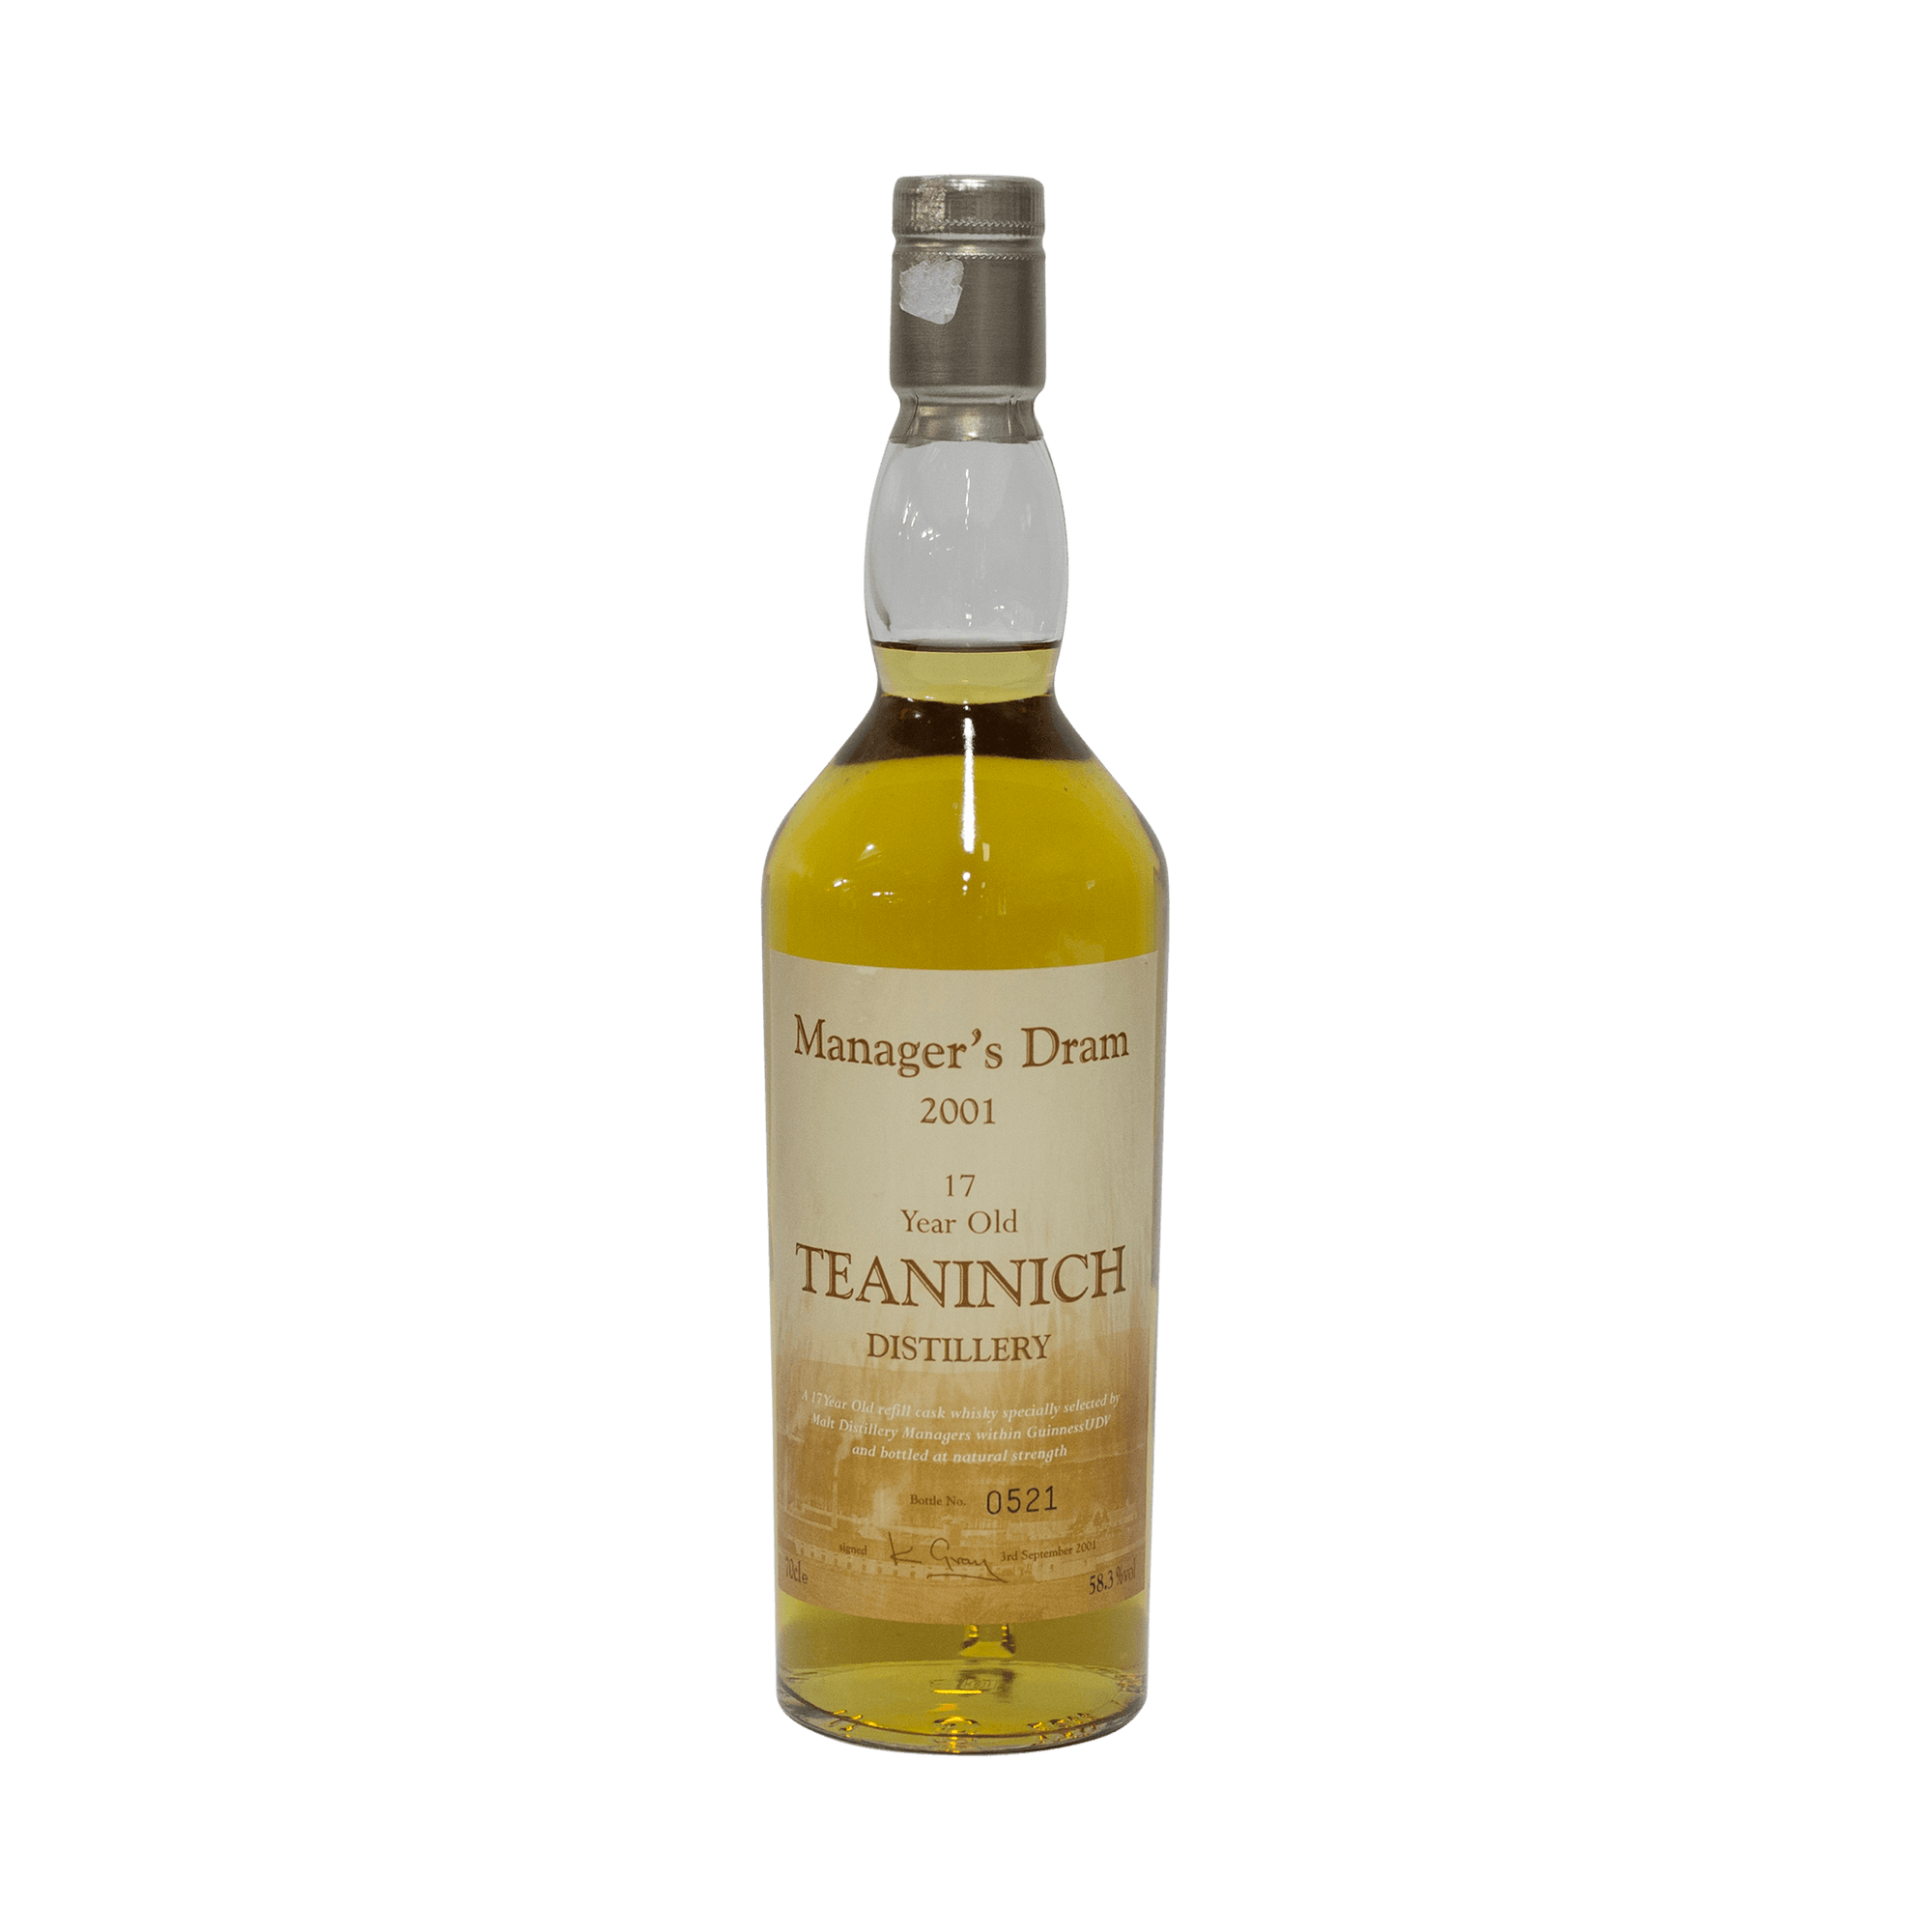 Teaninich 17 Year Old 'The Manager's' Dram 58.30%